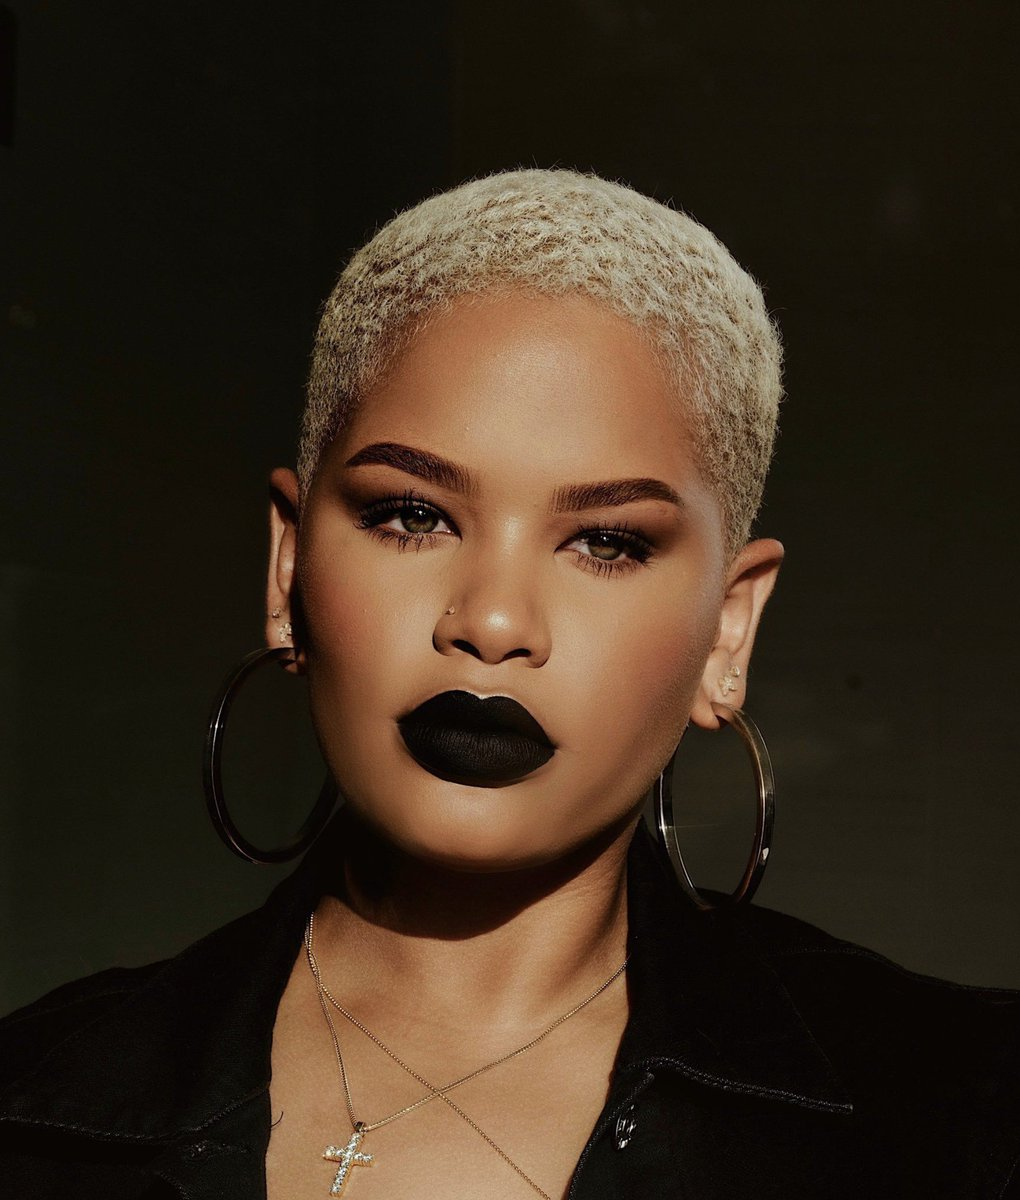 Wishing our queen of LEWKS (and photography!) @alissa_ashleyy a happy birthday today!! Go show her some love, y'all 🙌🏾💖